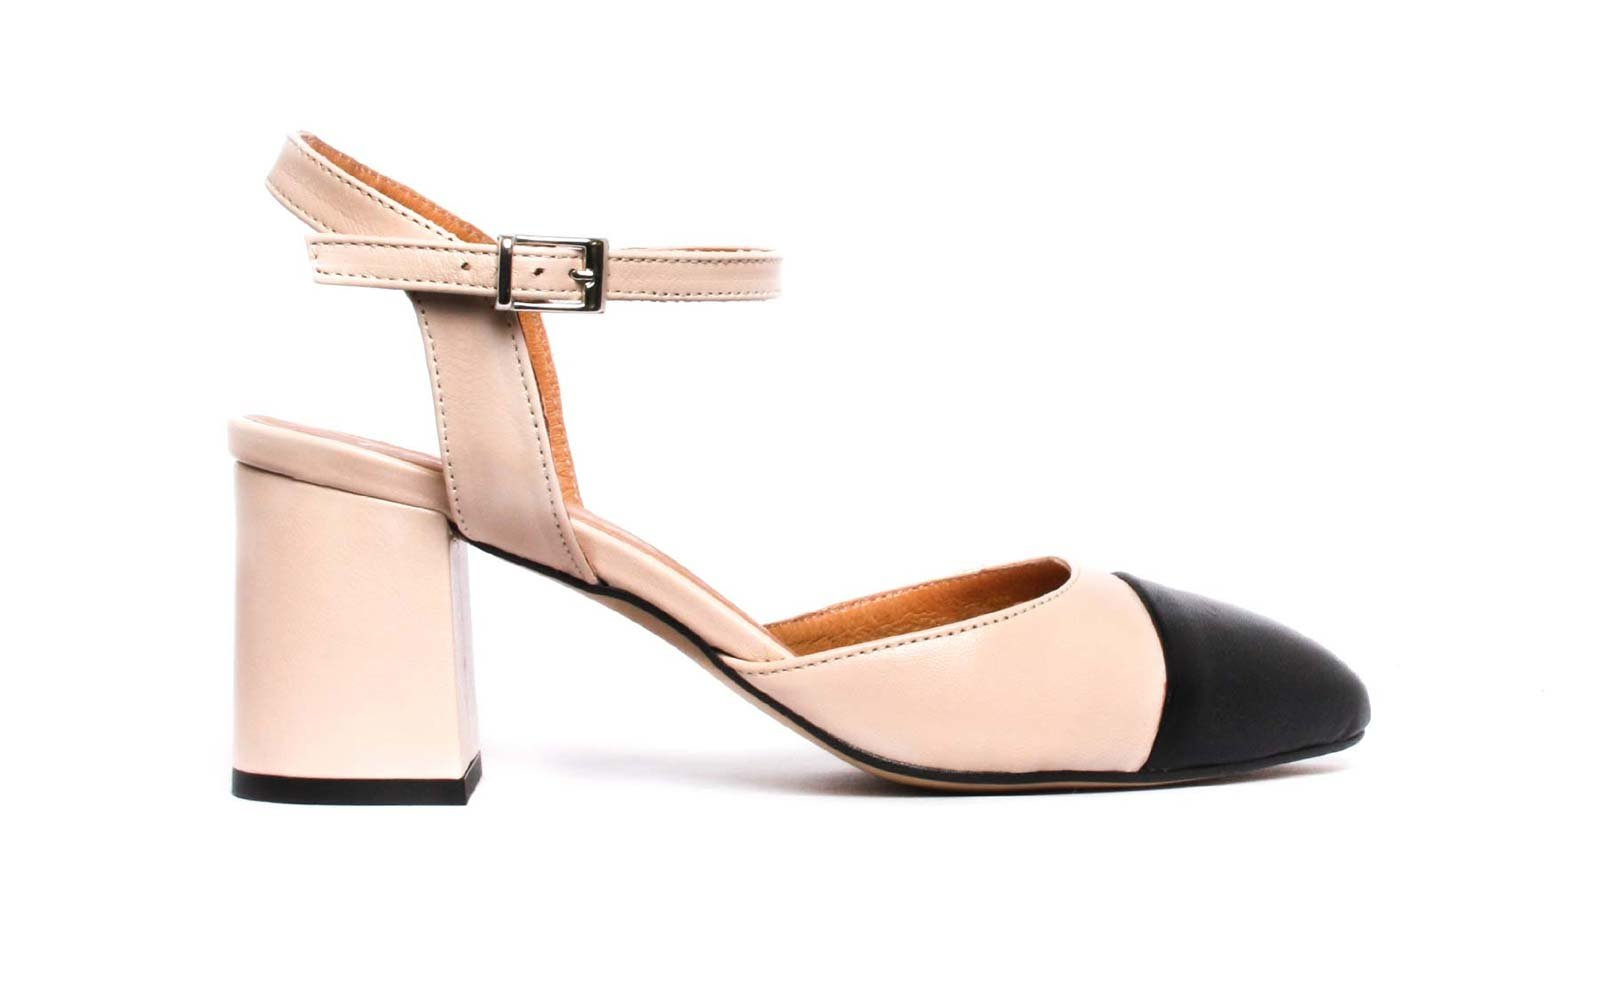 The Best Heels for Traveling